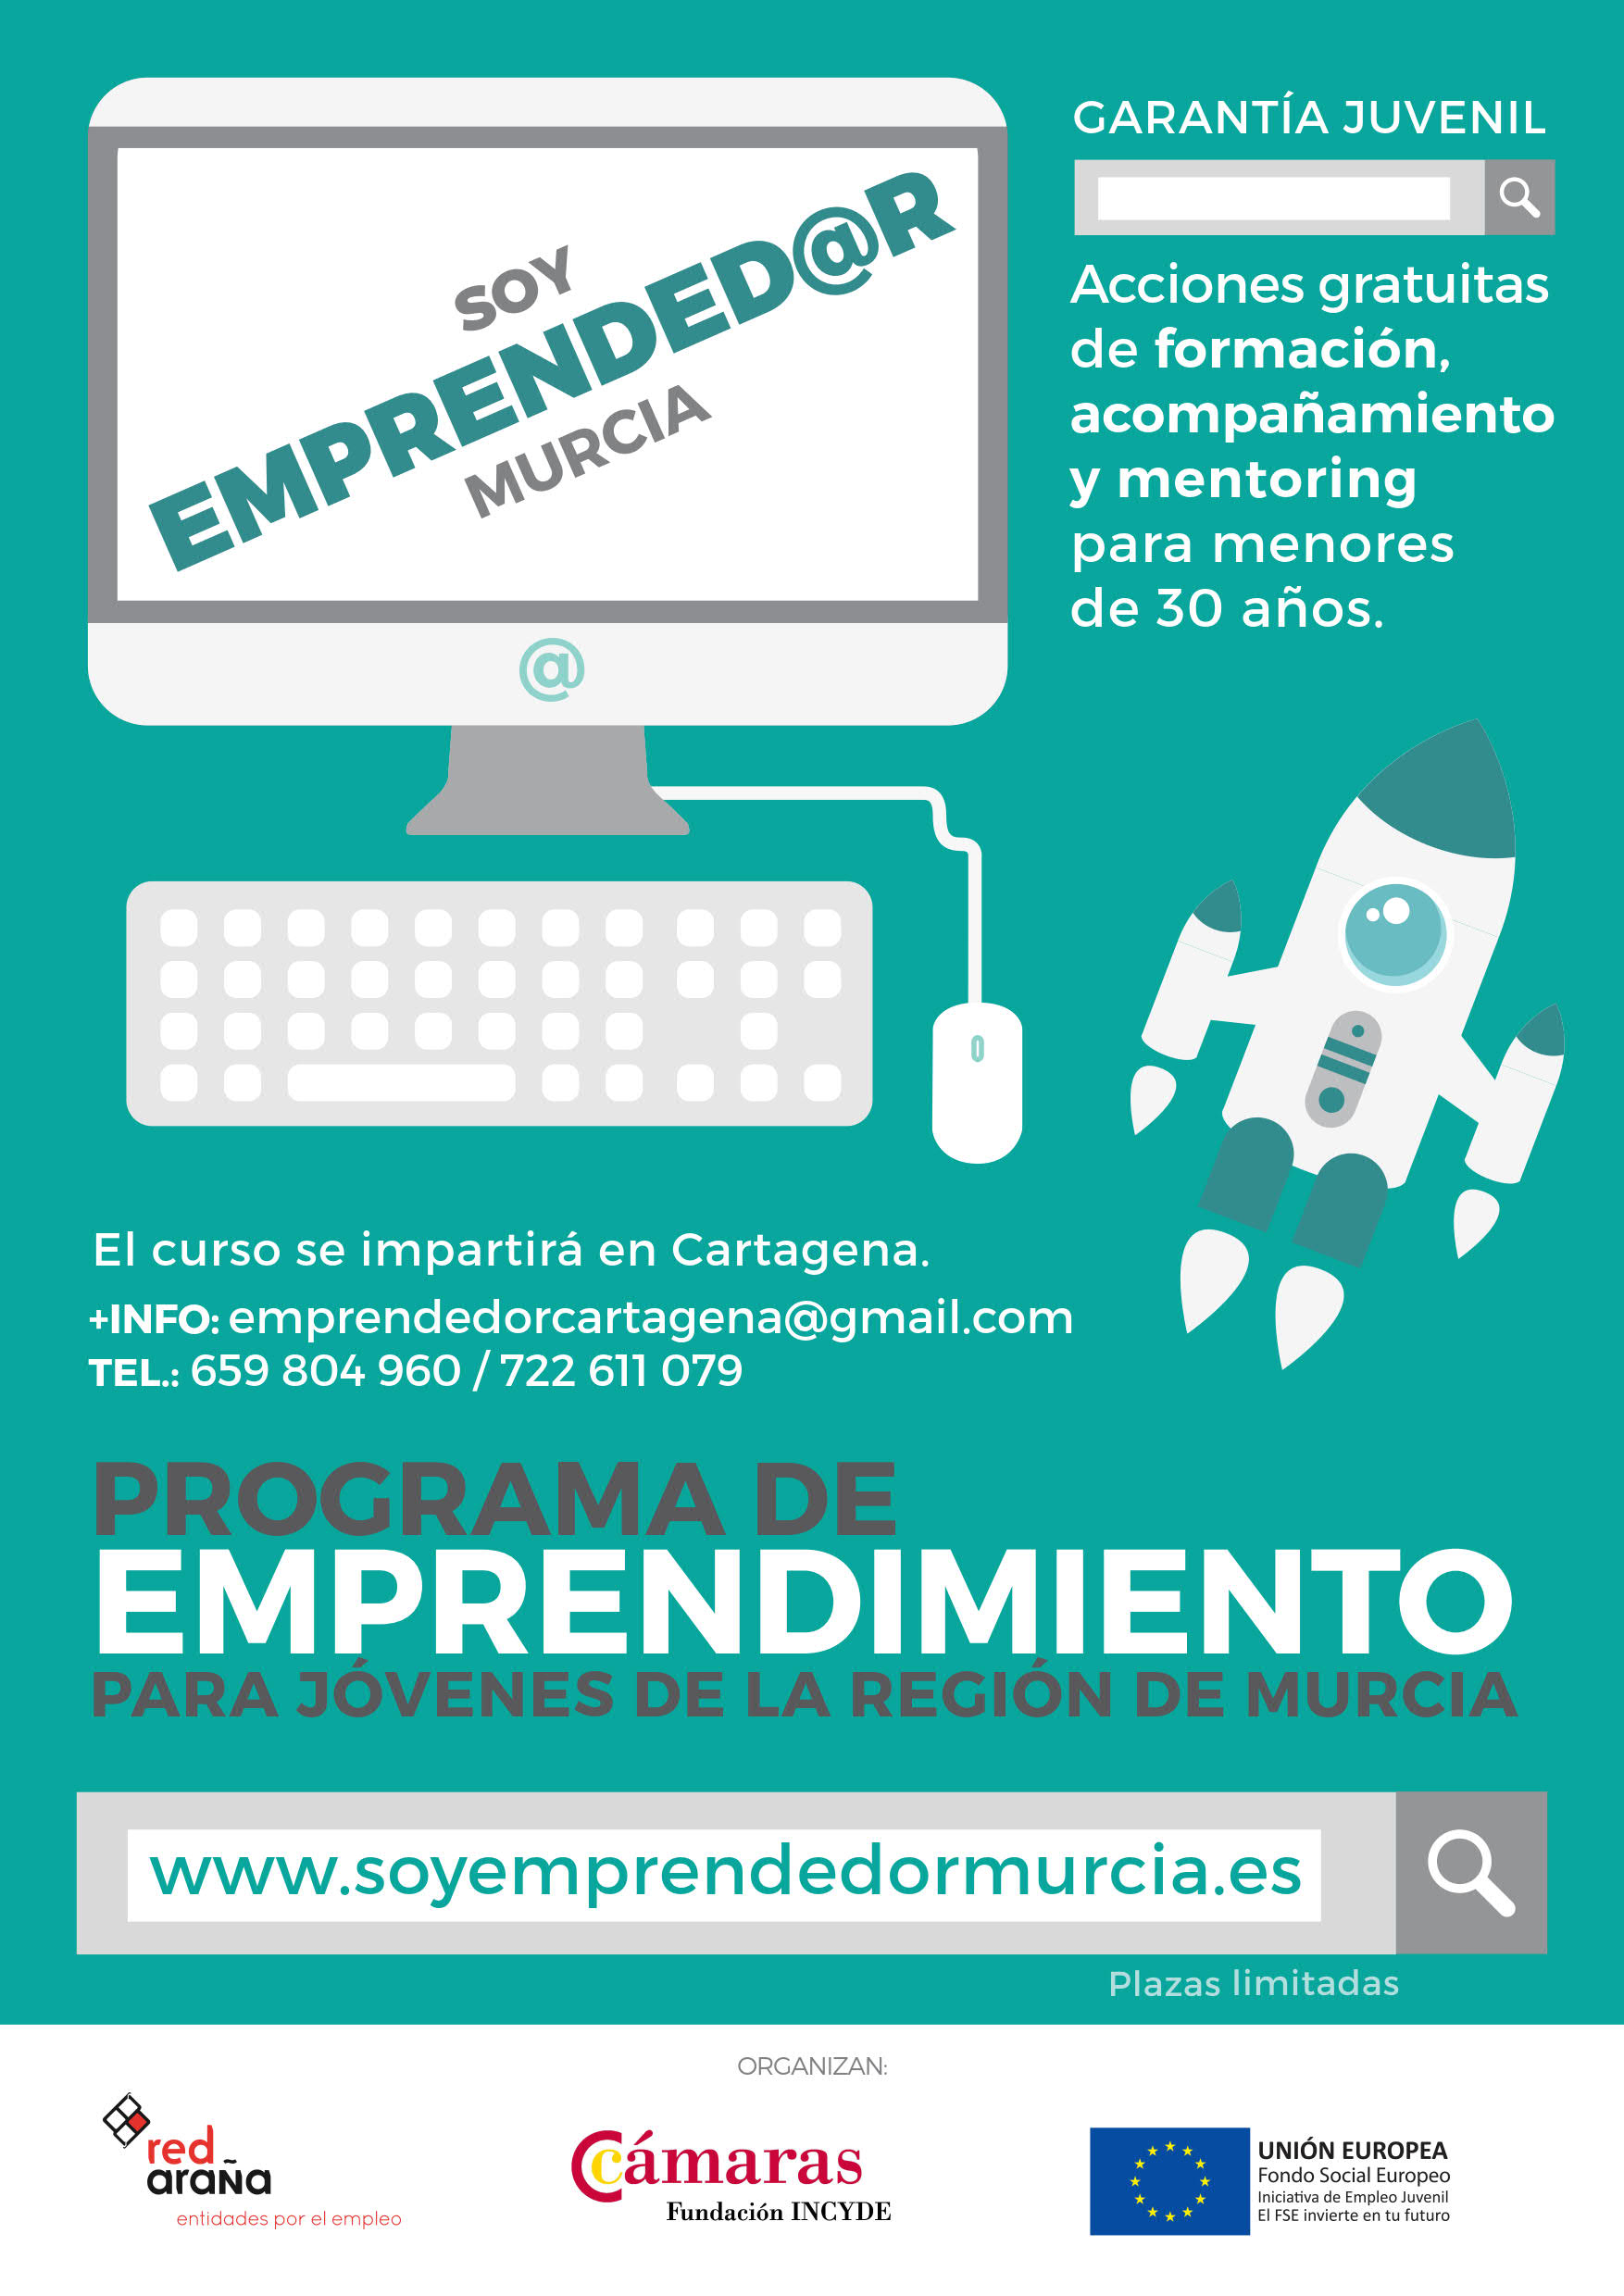 Img Soy emprended@r Murcia